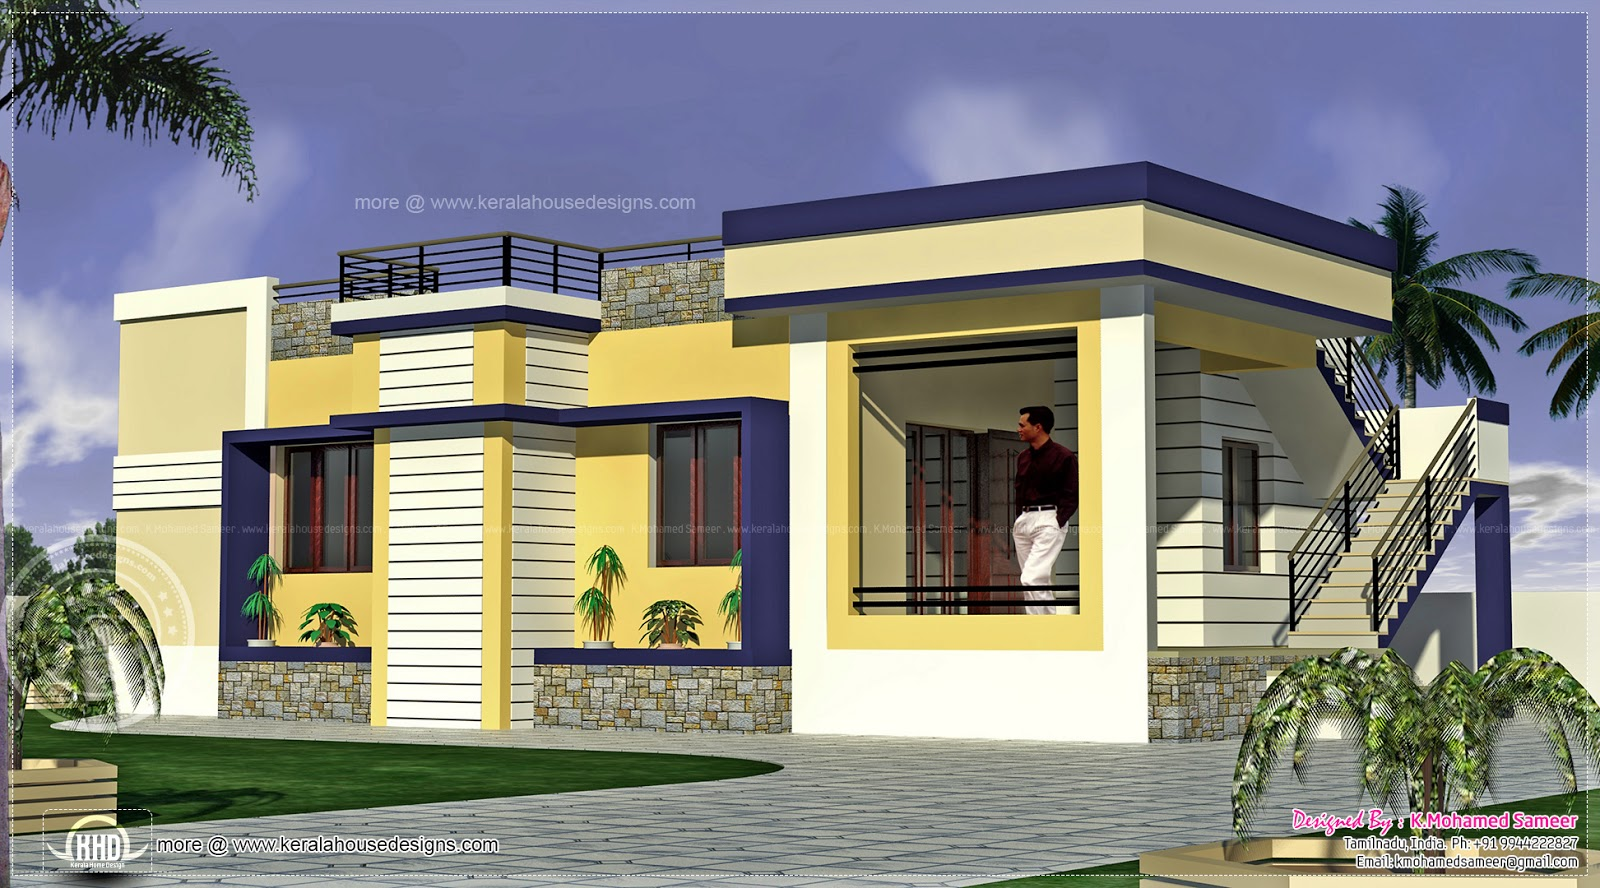 Kerala tamil nadu house plans 1000 sq ft house plans 1000 for Kerala model house plans 1000 sq ft